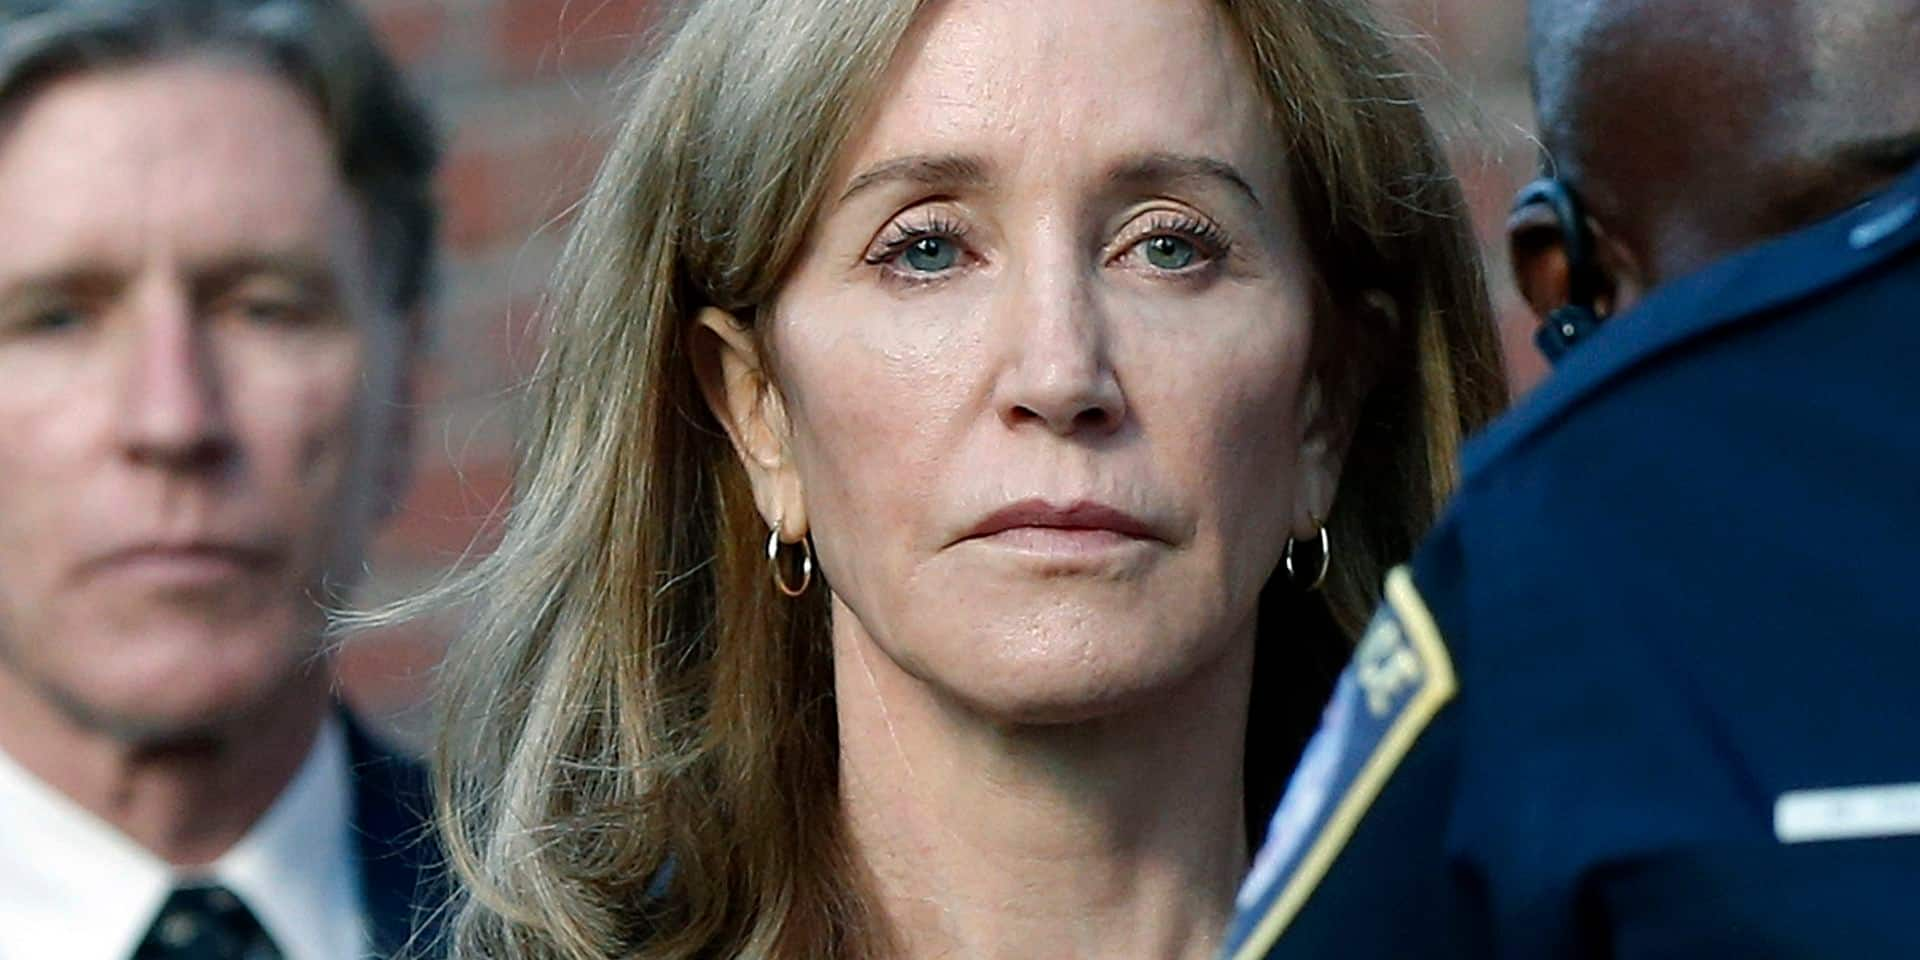 Felicity Huffman (Desperate Housewives) condamnée à faire de la prison